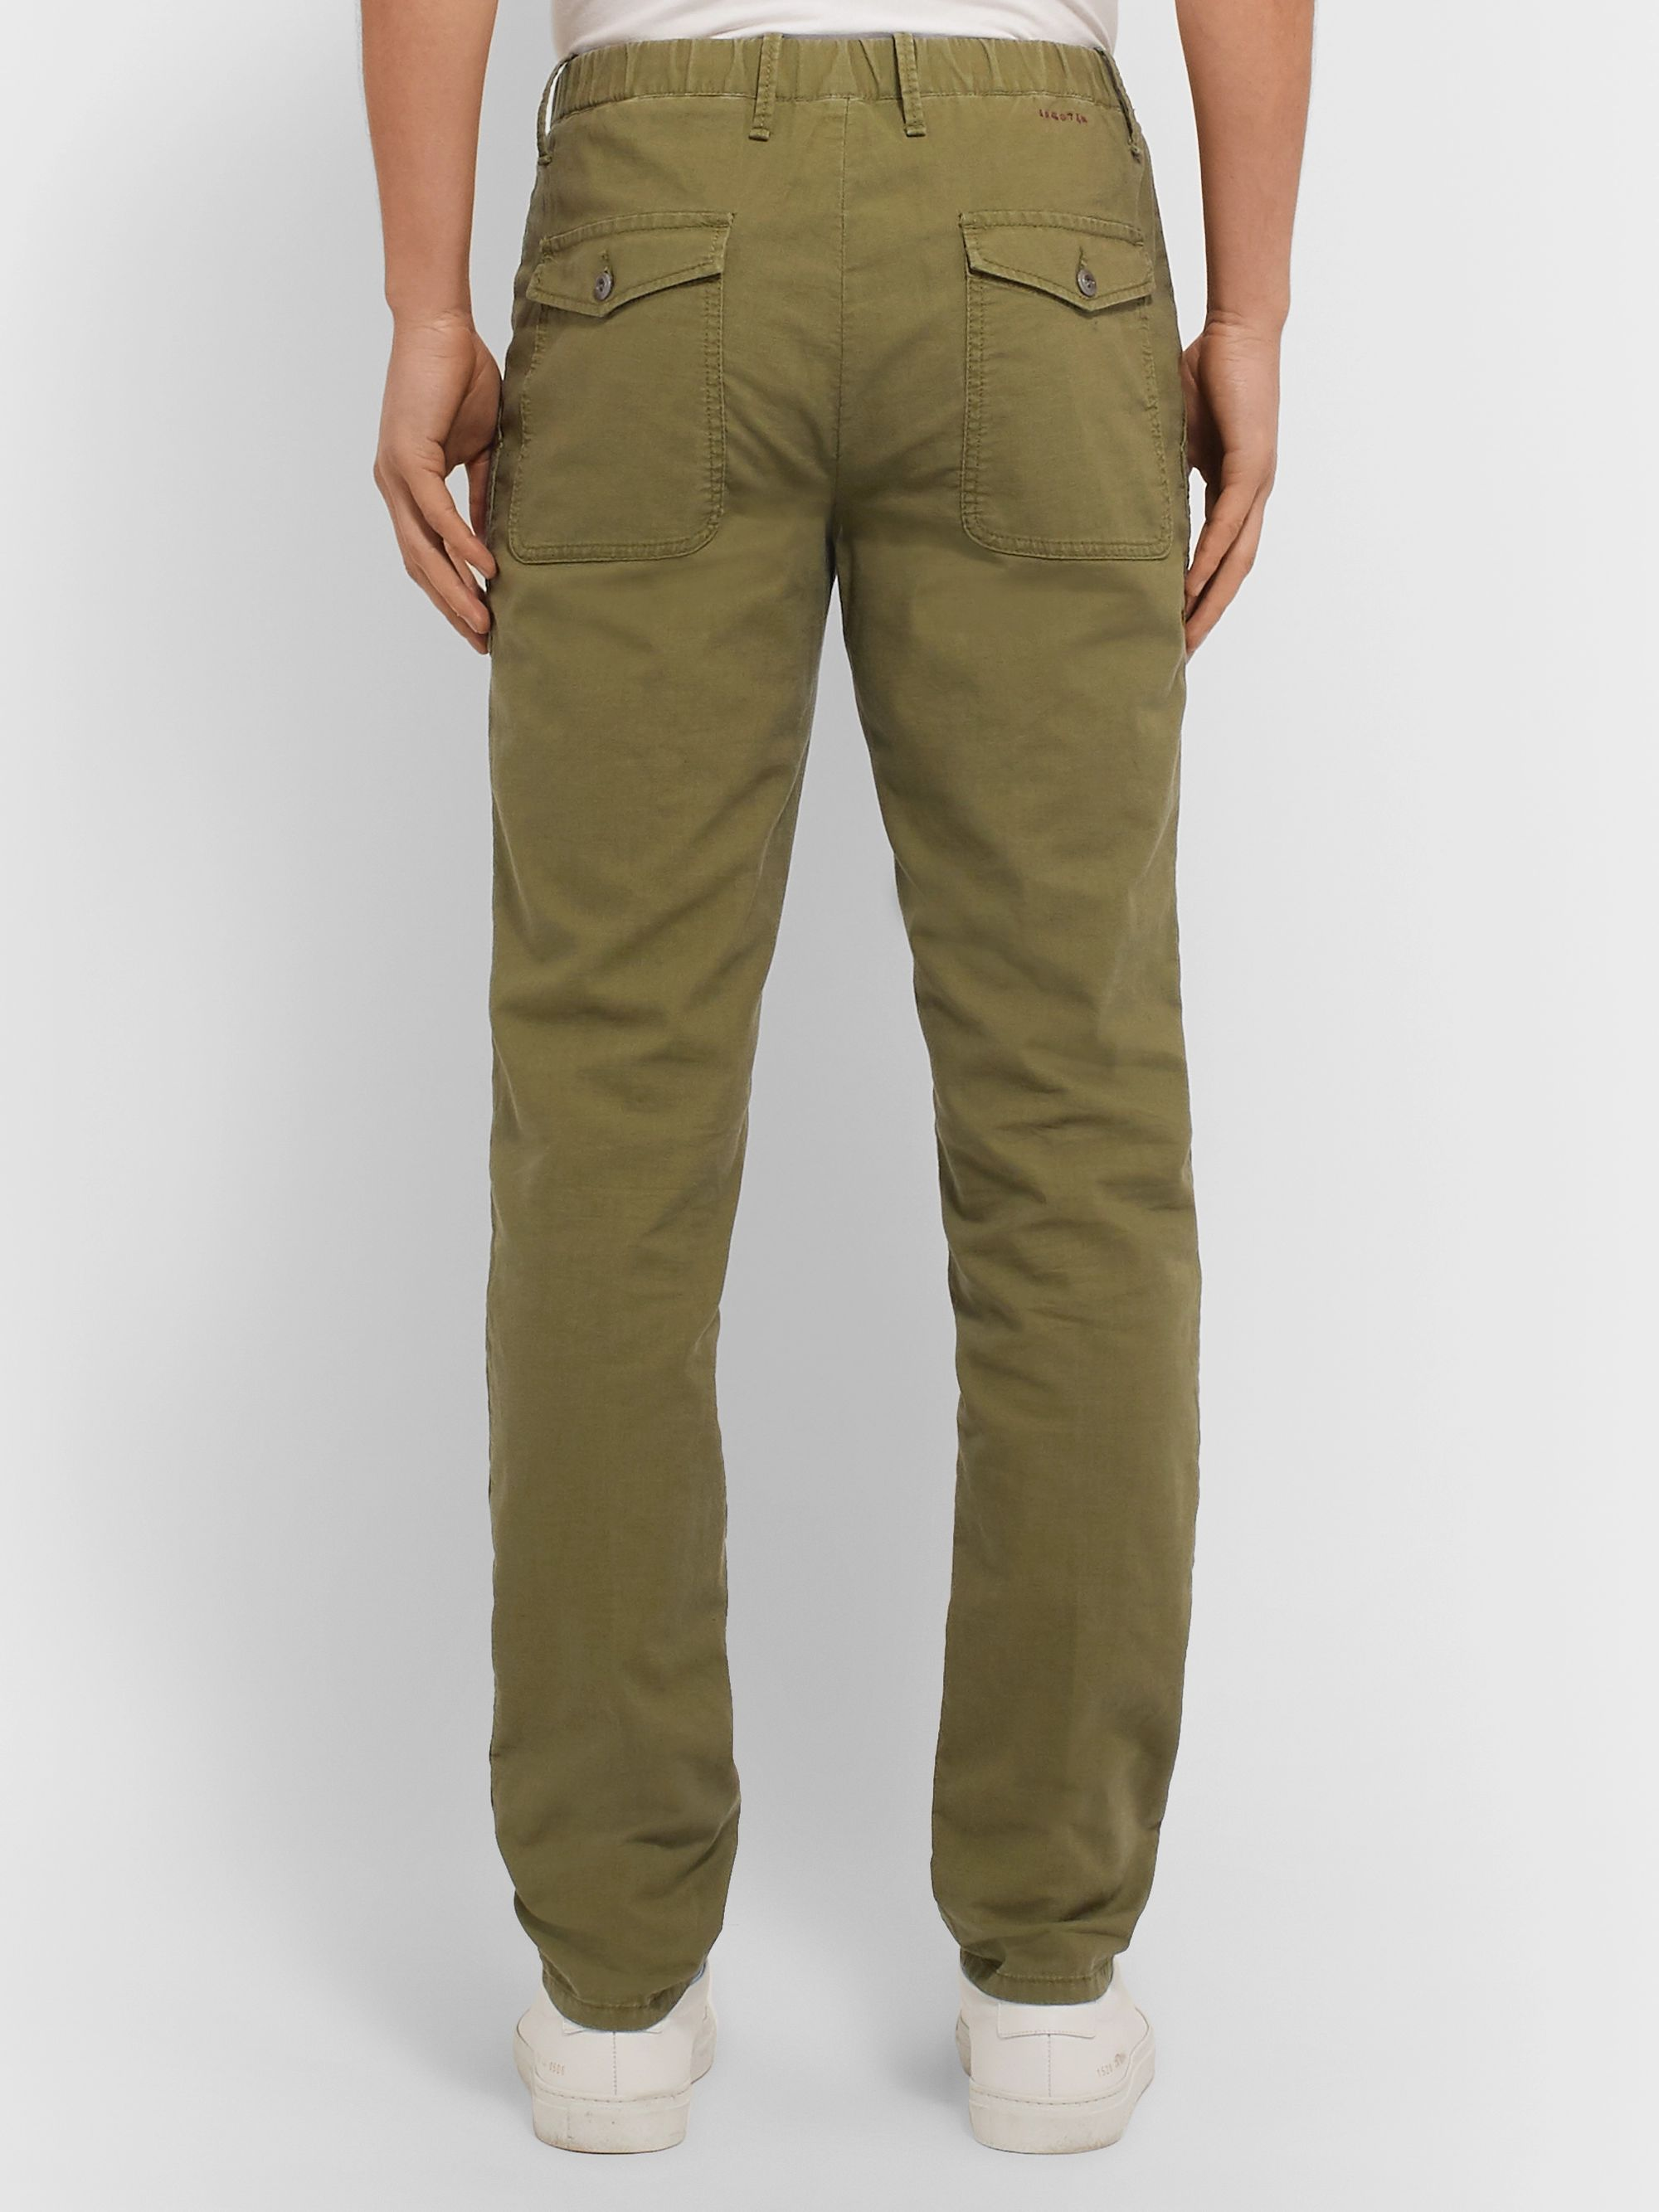 Incotex Slim-Fit Garment-Dyed Cotton Drawstring Trousers